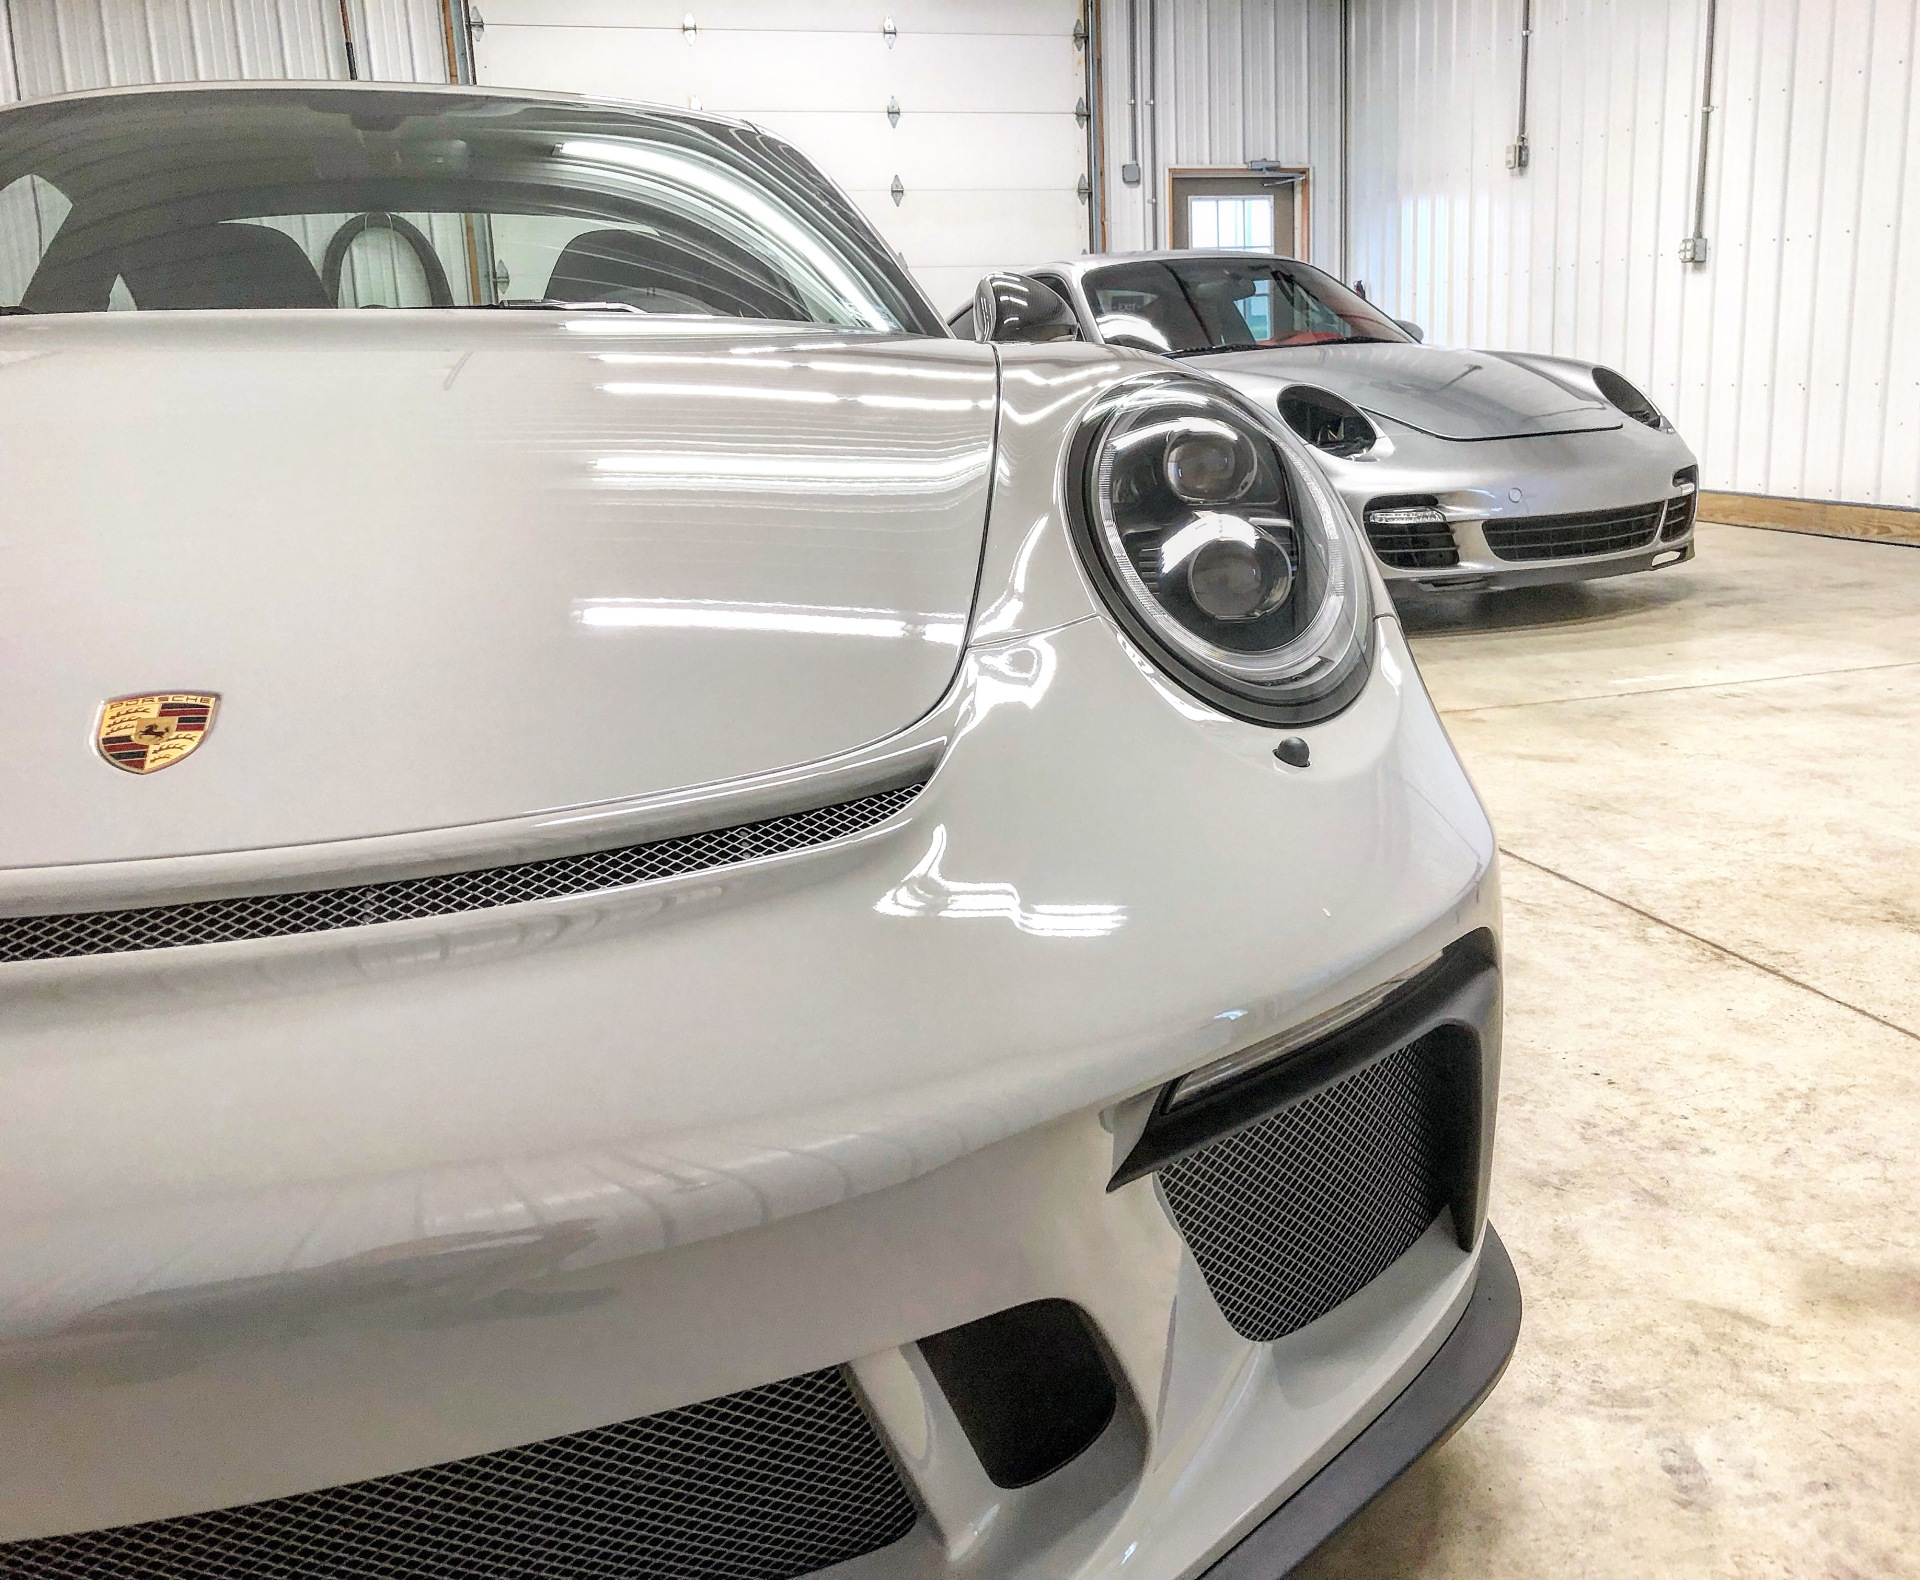 Porsche 911 GT3 Touring & 911 Turbo